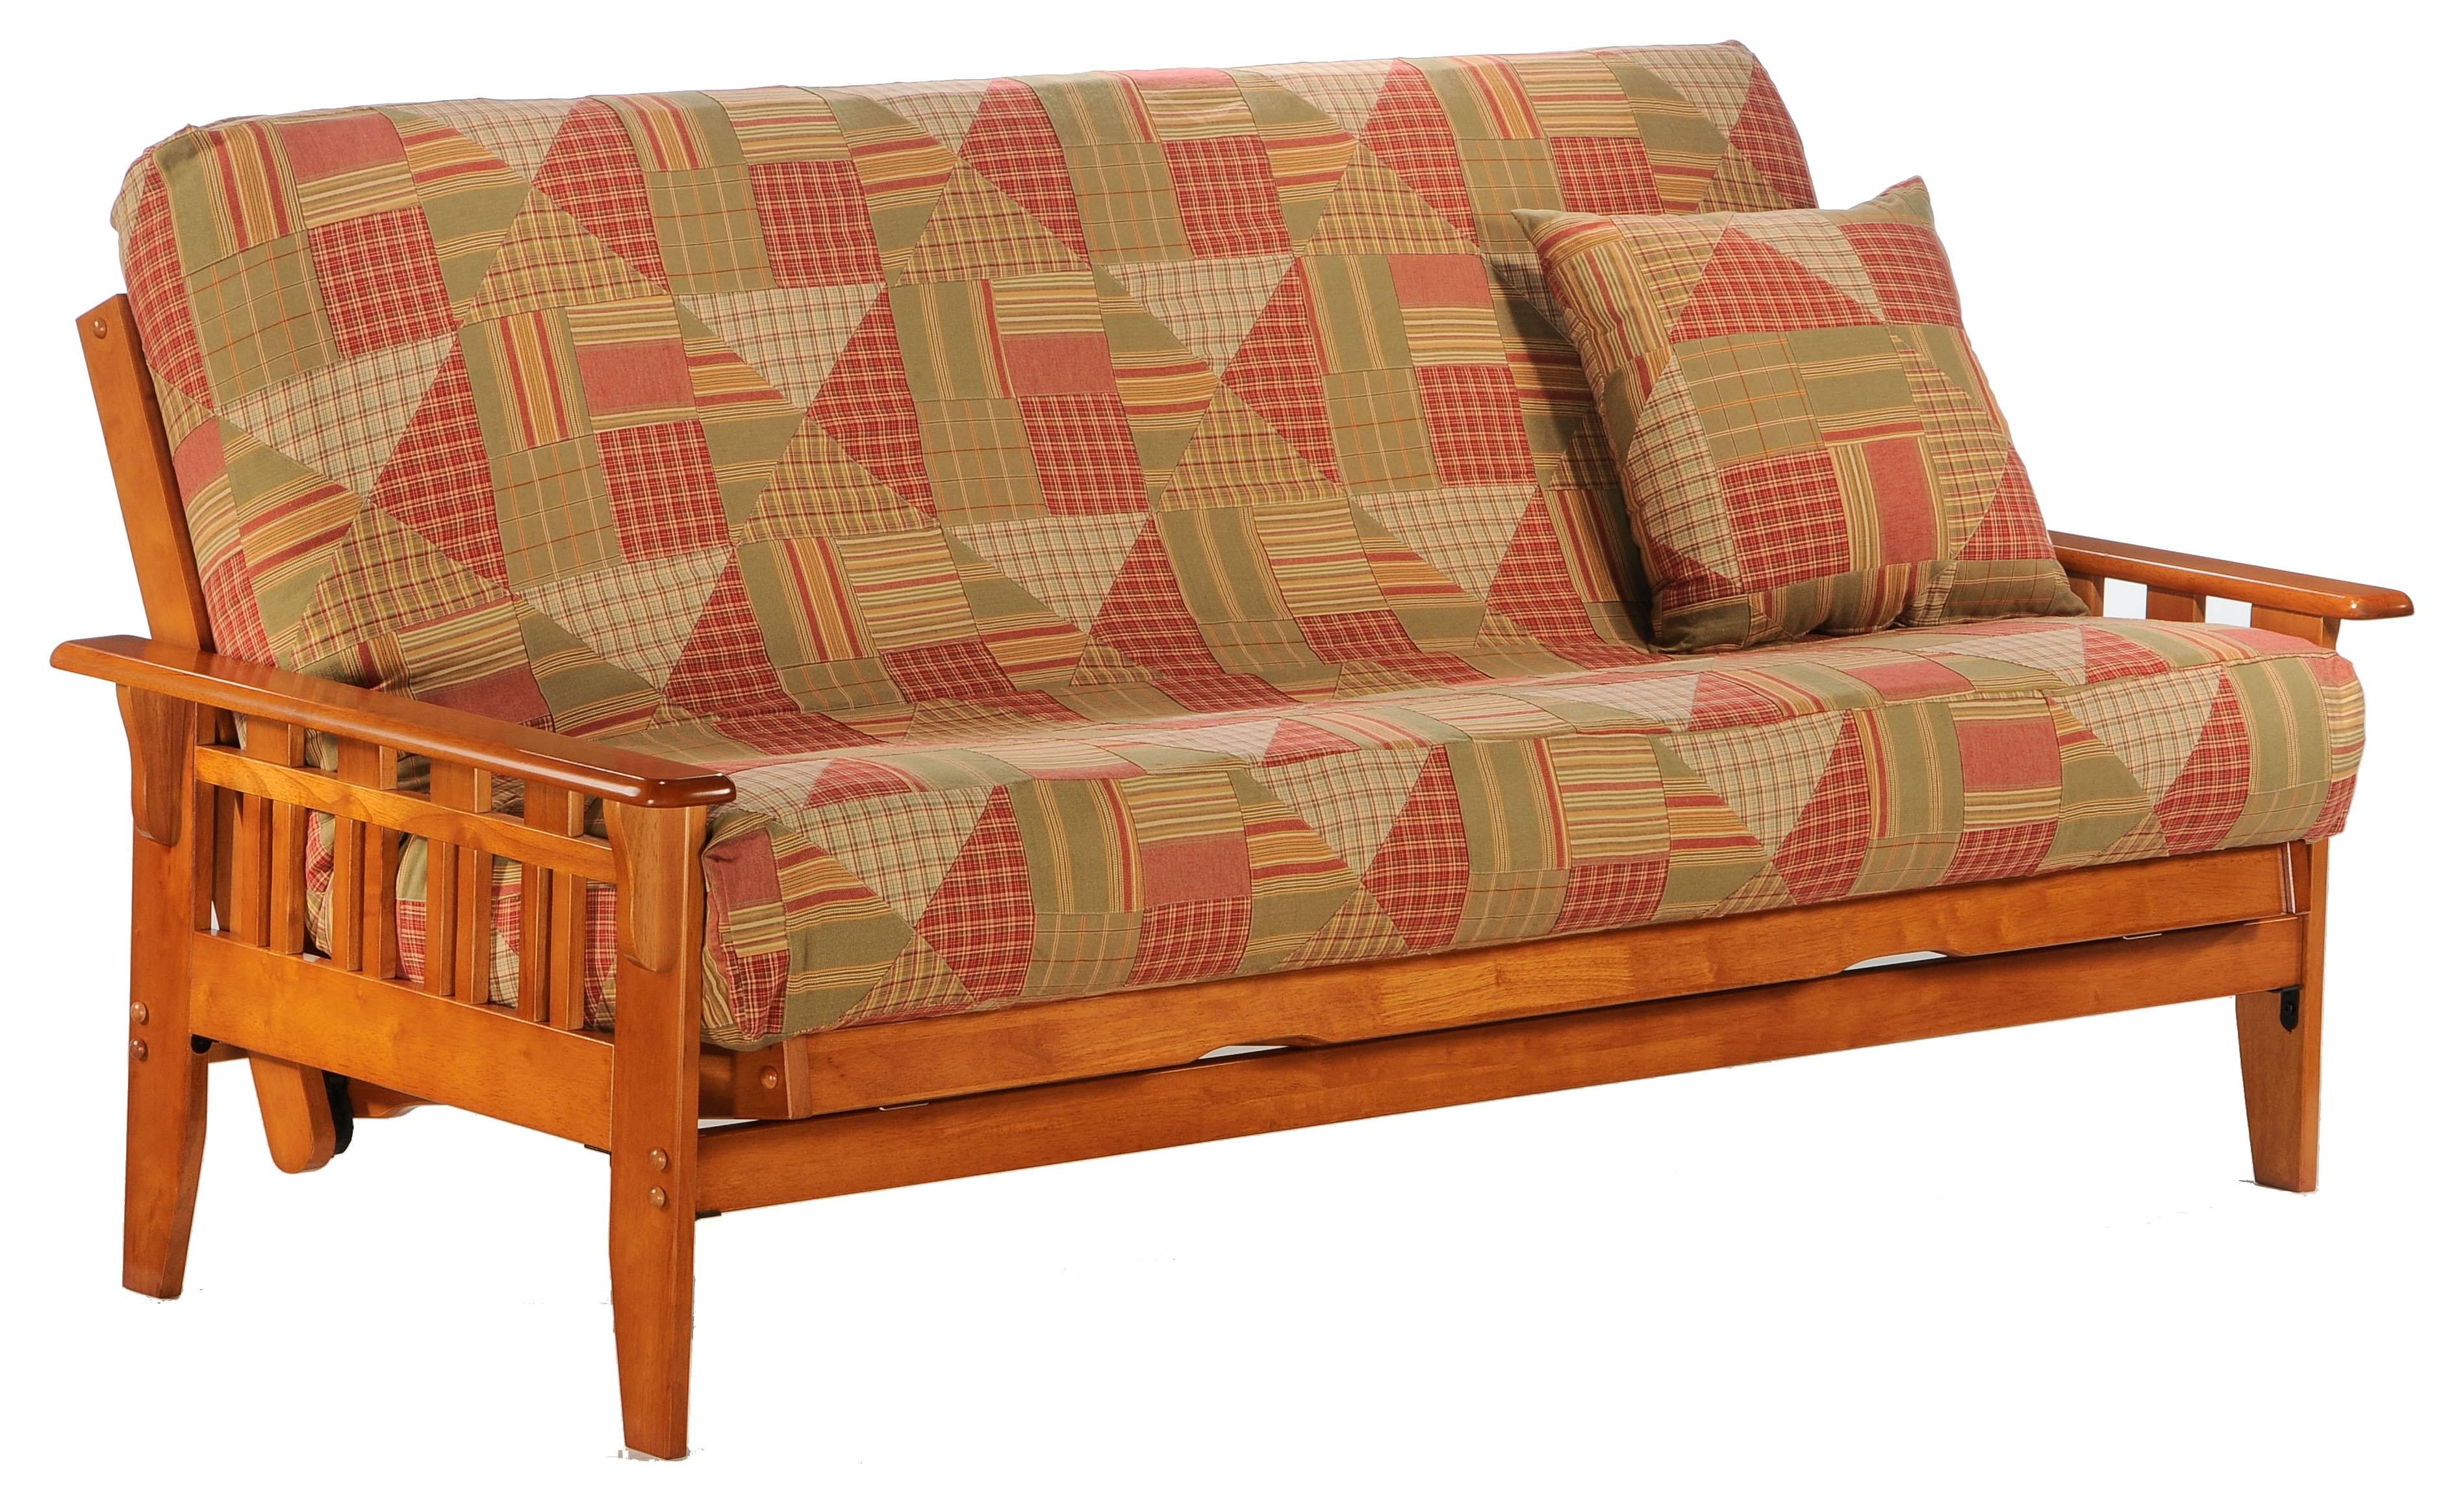 Kingston Honey Oak Chair Size Futon by Night & Day Furniture at Furniture and ApplianceMart